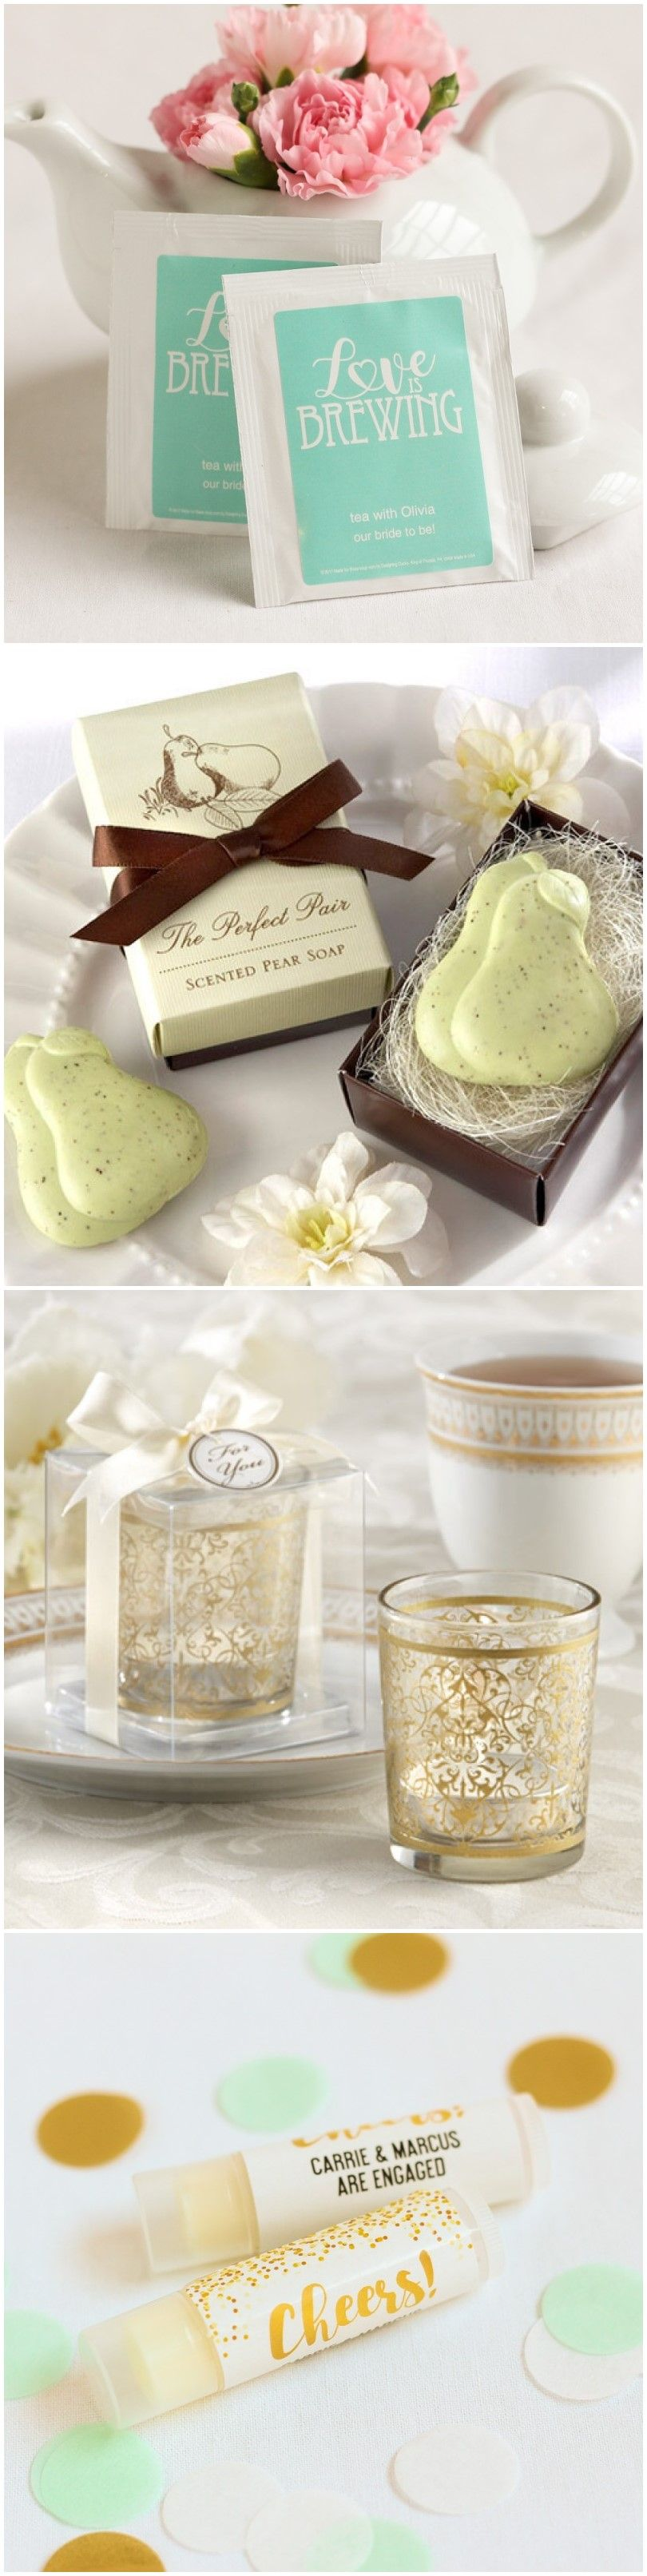 20 Unique and Cheap Wedding Favor Ideas Under $2 | Favors, Weddings ...